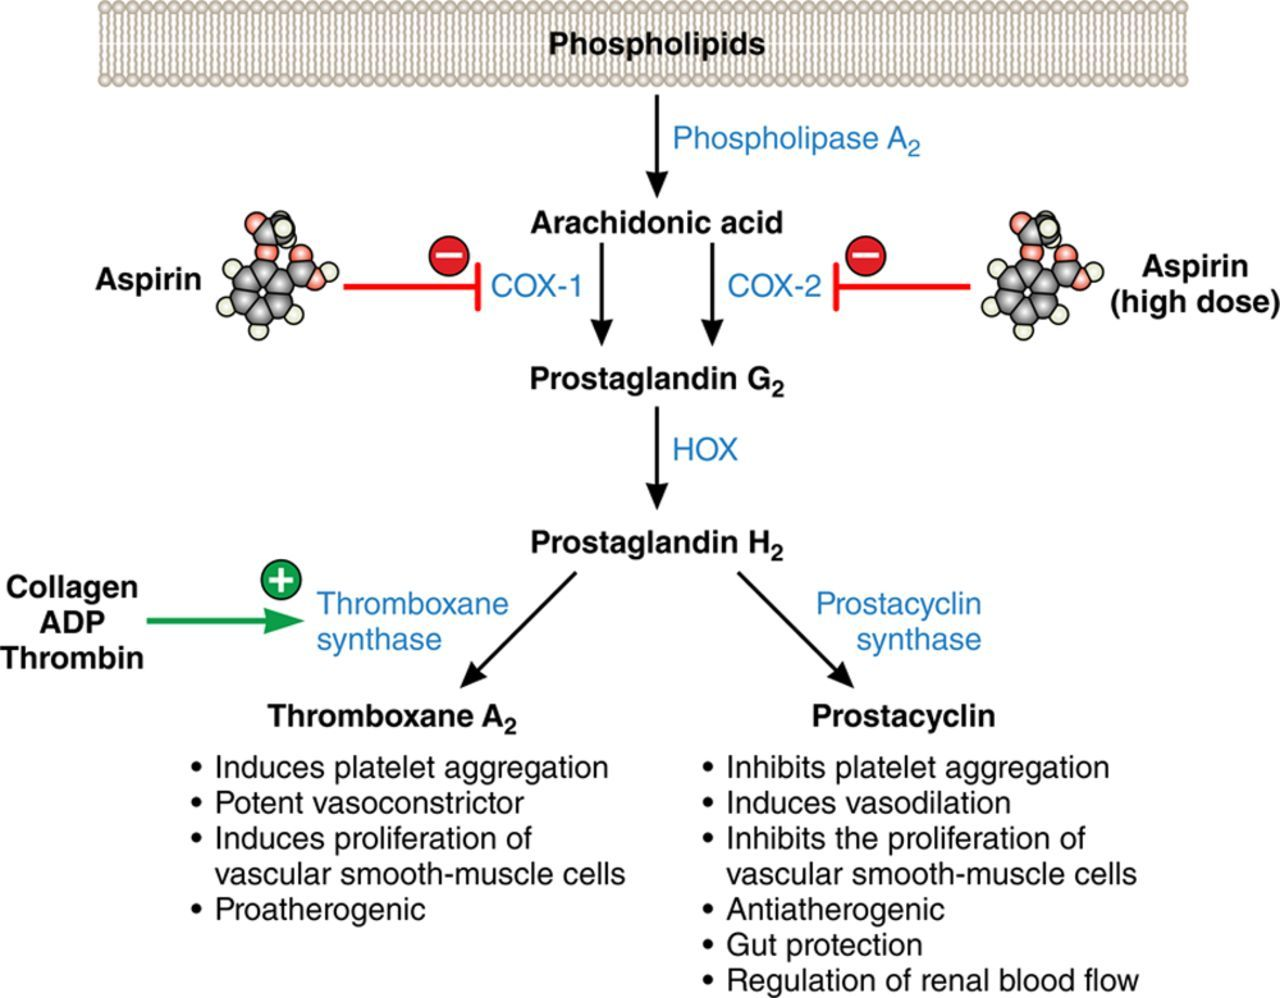 medium resolution of image result for aspirin mechanism of action pharmacology pharmacy line chart ms